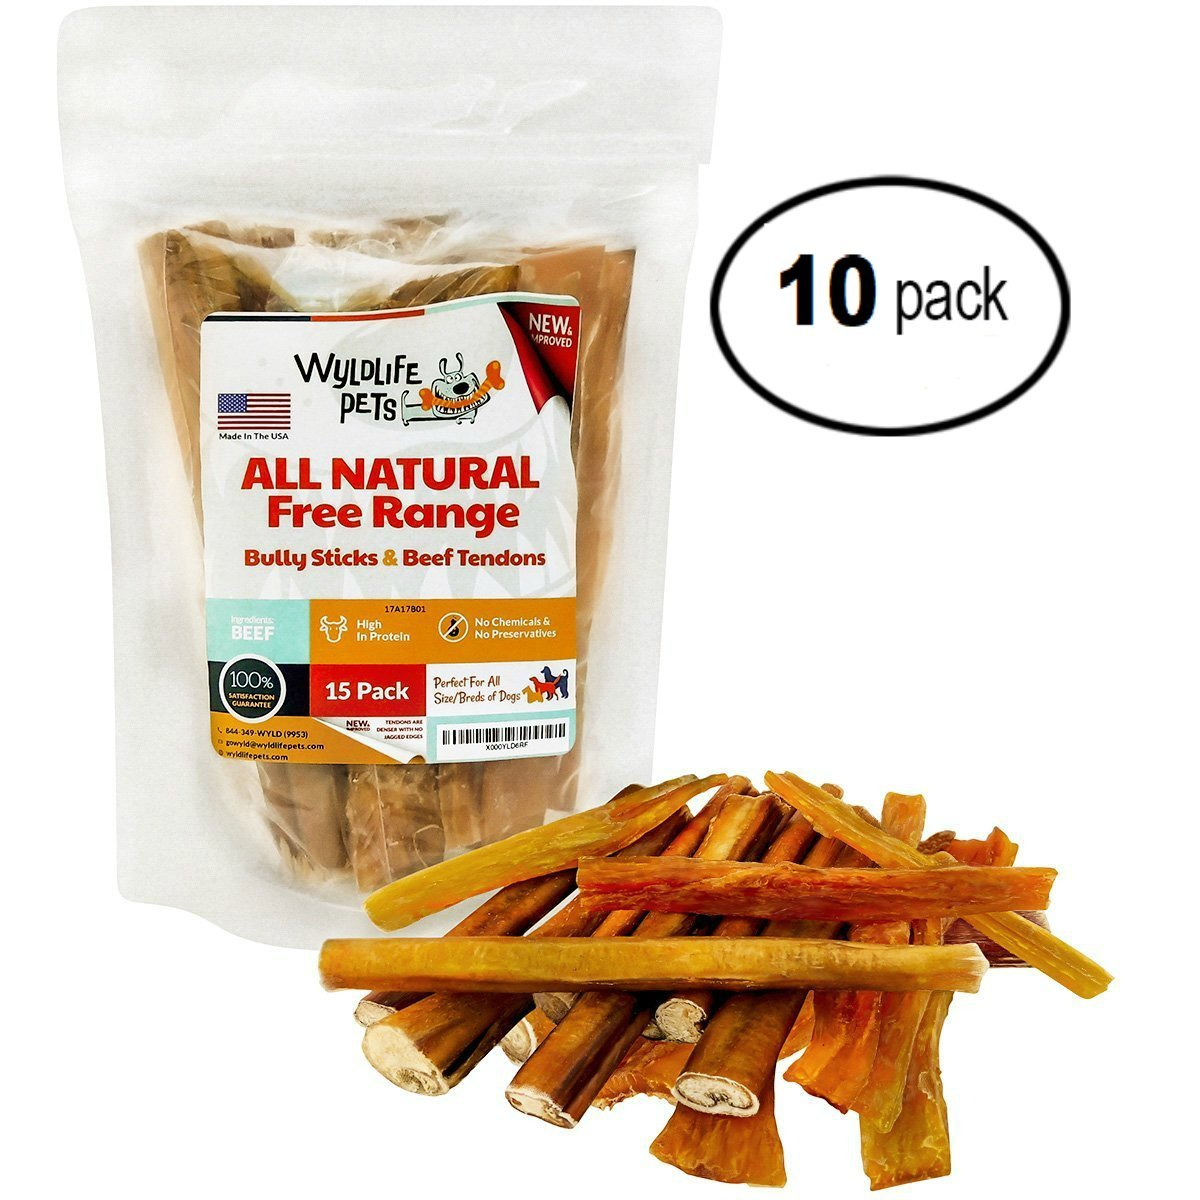 Bull's Pizzle and Beef Tendons - Large Bully Sticks Are Made With Grass Fed Cattle To Promote Dog's Muscle And Cartilage Building - A Tasty Way To Train Your Favorite Pet (10 - 15 Packs)